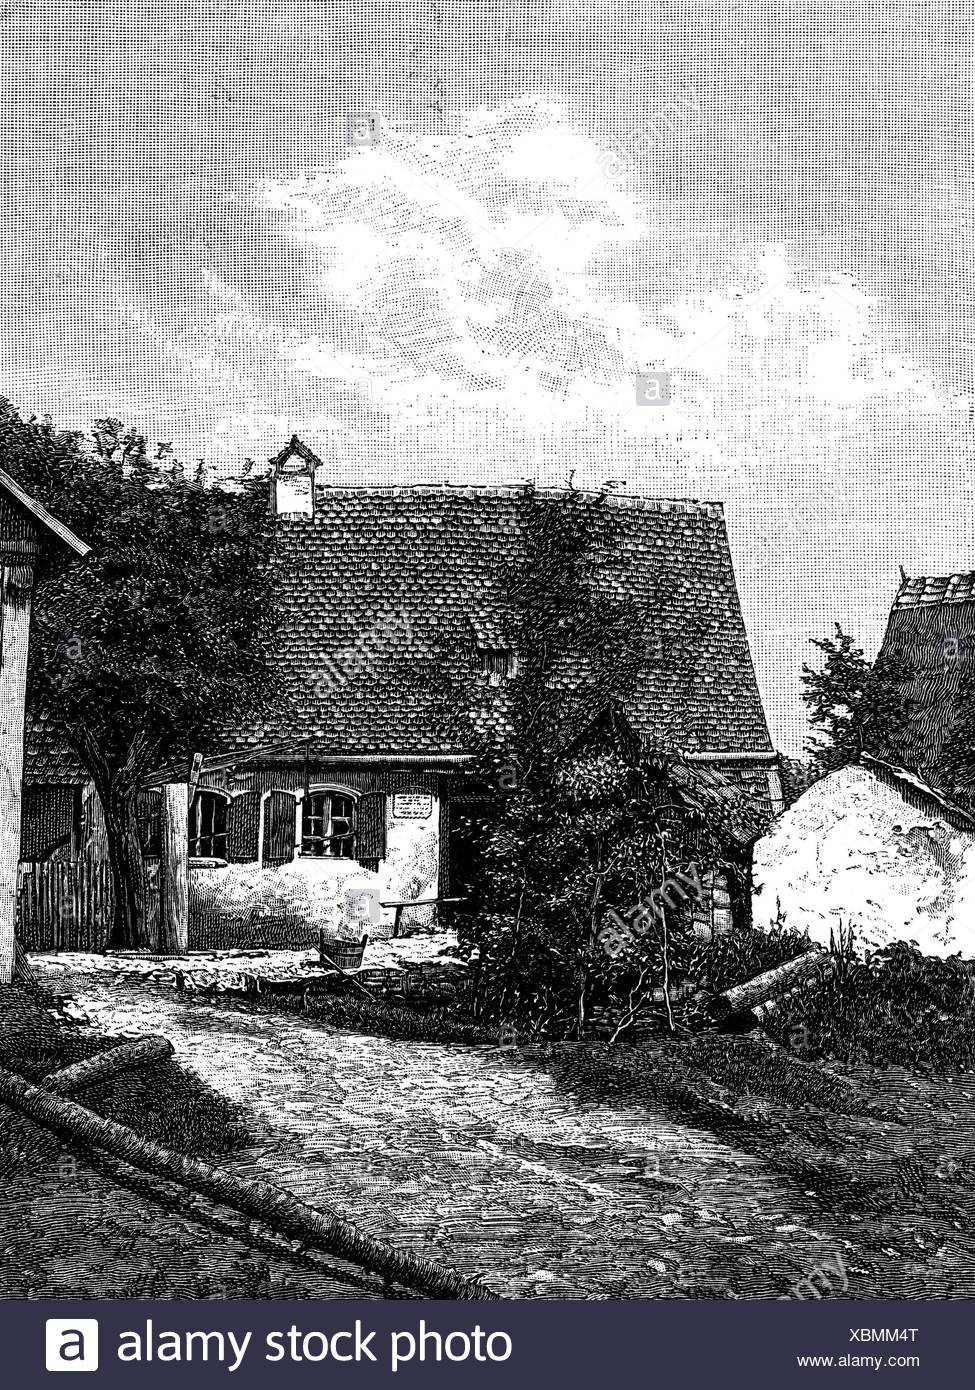 Gluck, Christoph Willibald, 2.7.1714 - 15.11.1787, German musician (composer), his birth house in Weidenwang (Bavaria), wood engraving, 19th century, Additional-Rights-Clearances-NA Stock Photo